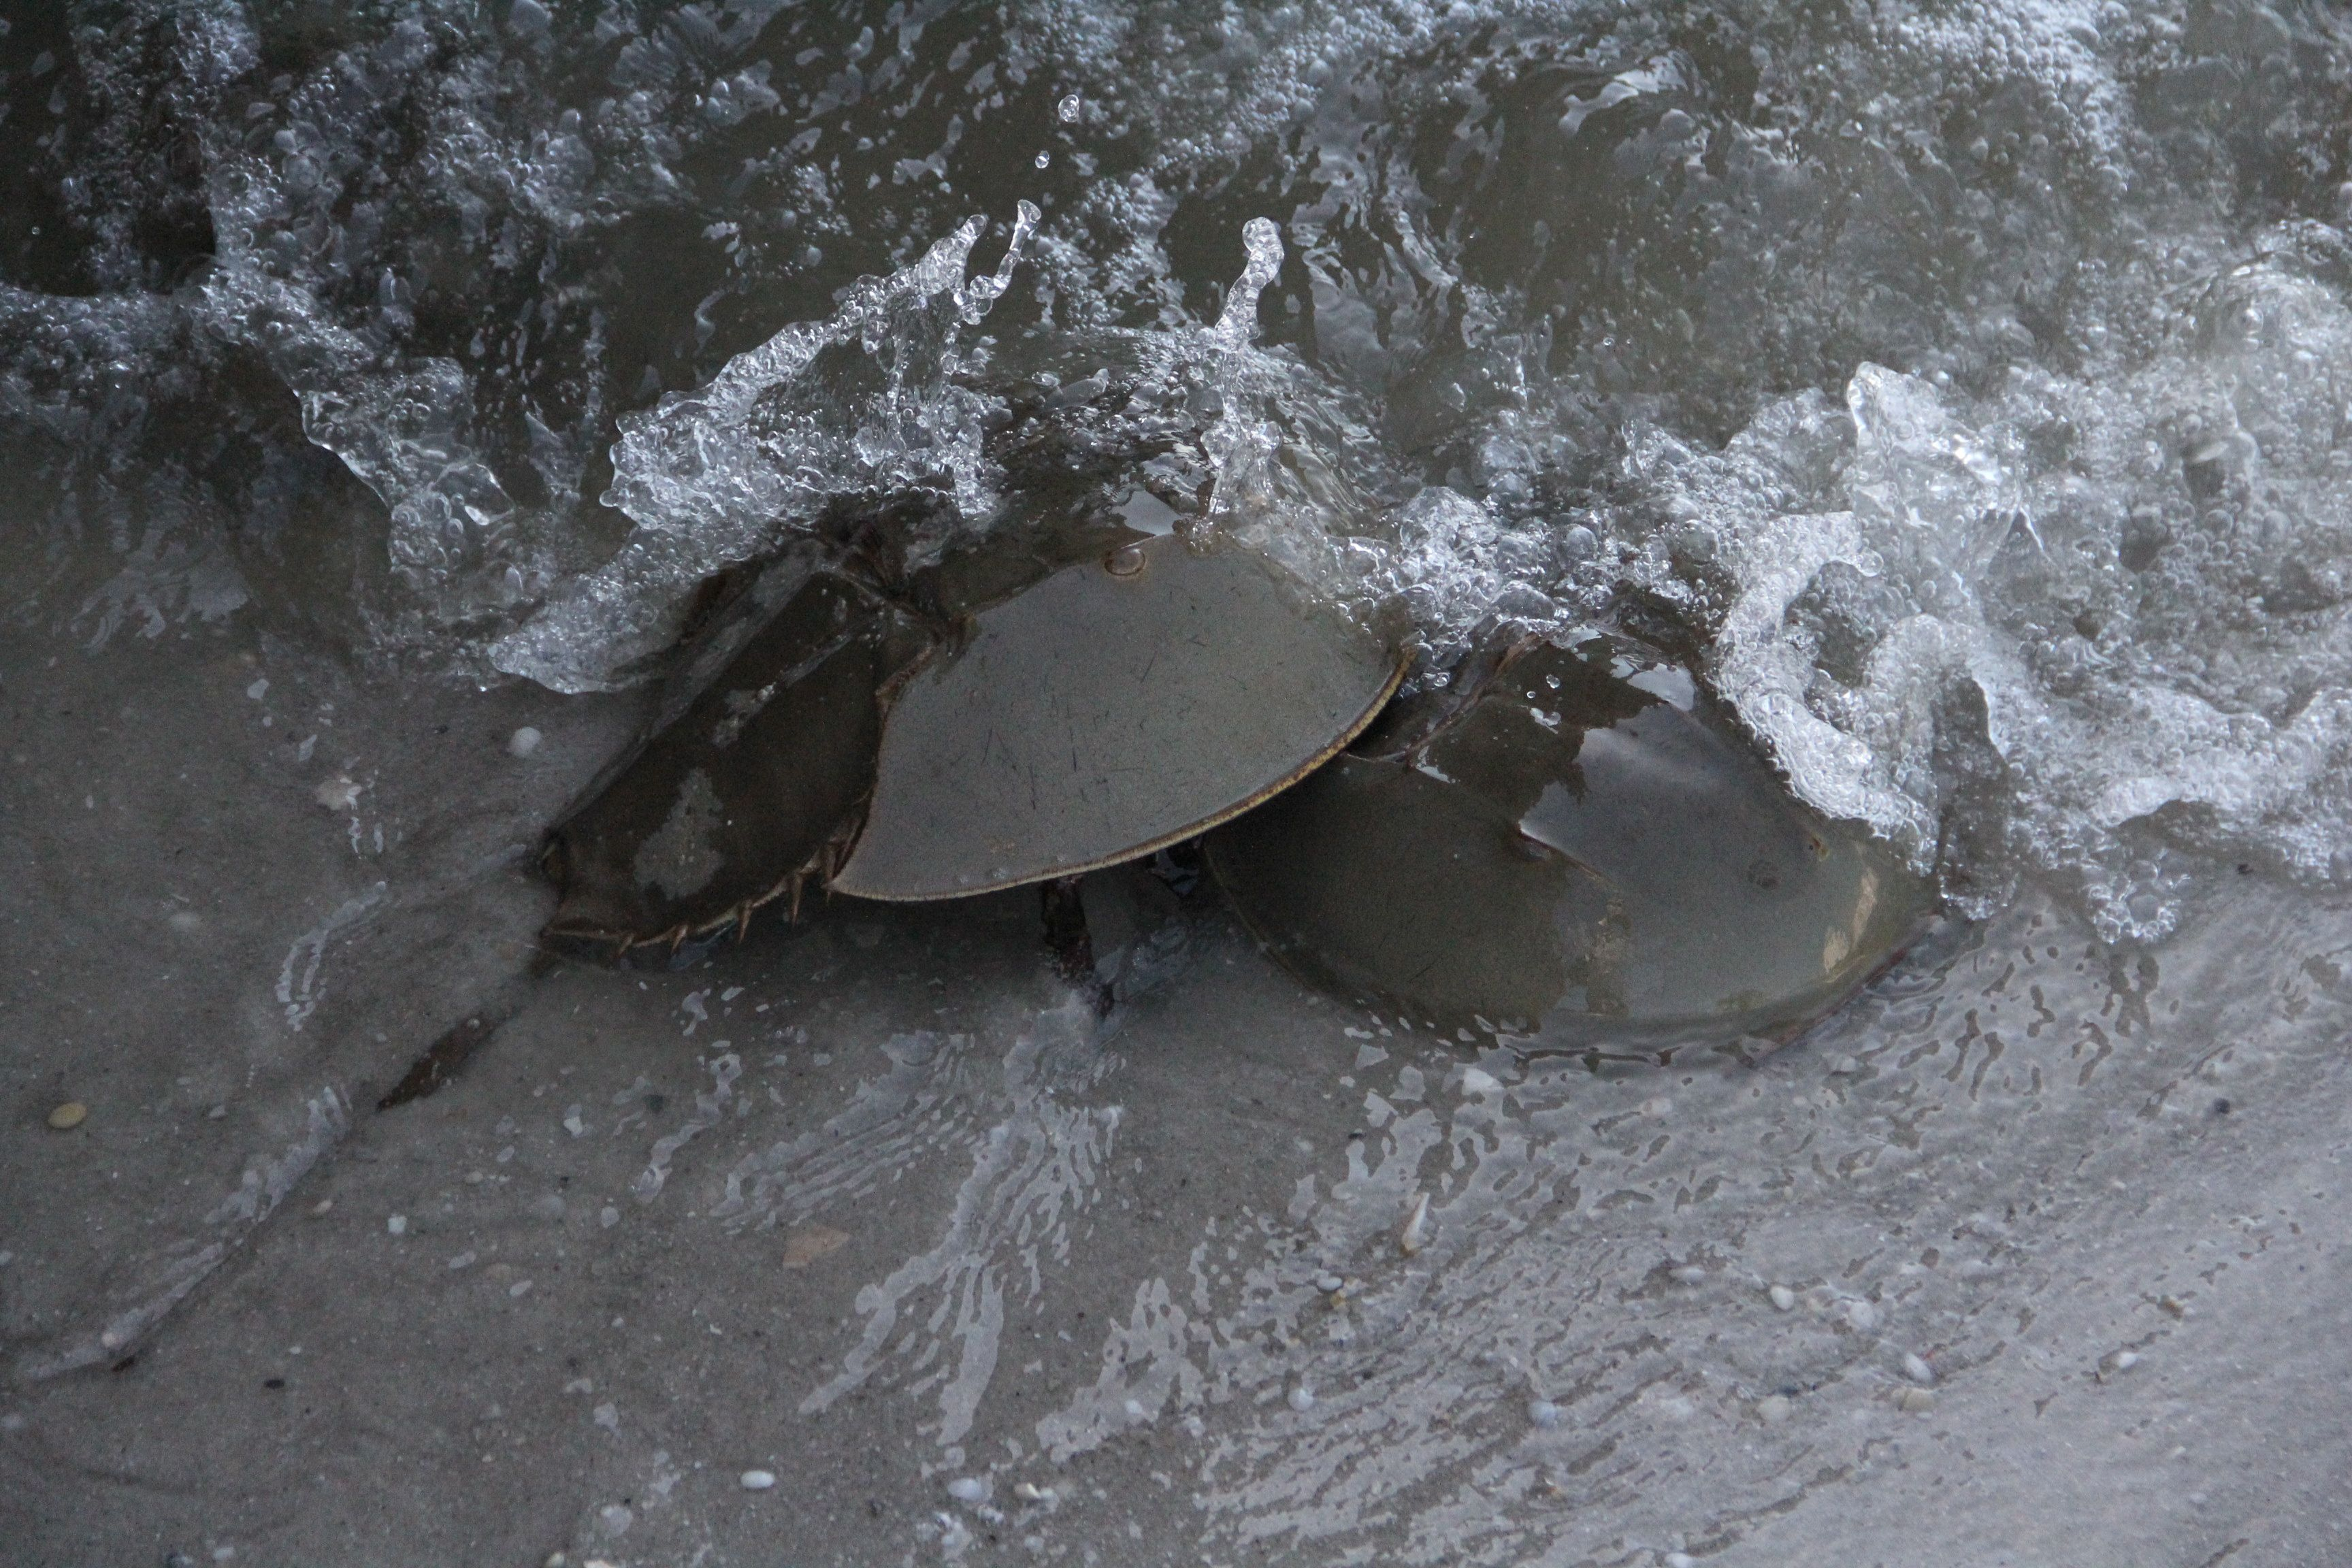 Horseshoe Crabs Cape May County Nj Cape May County Horseshoe Crab Cape May